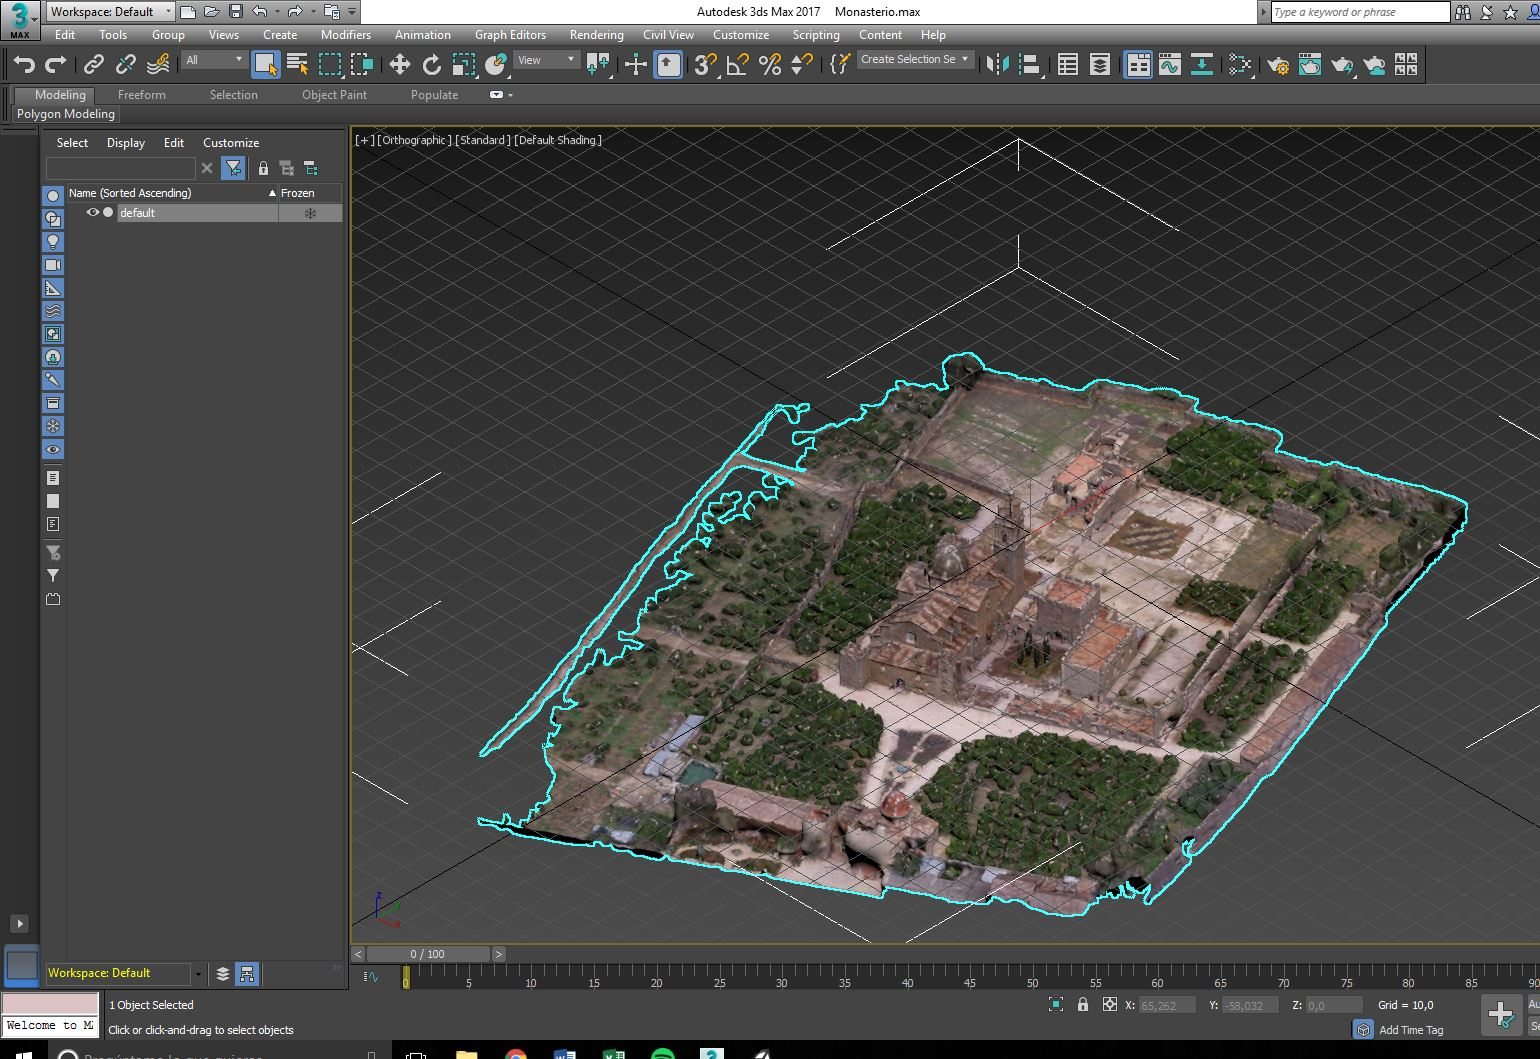 Problem importing 3D model from 3ds Max to Unity - Unity Answers